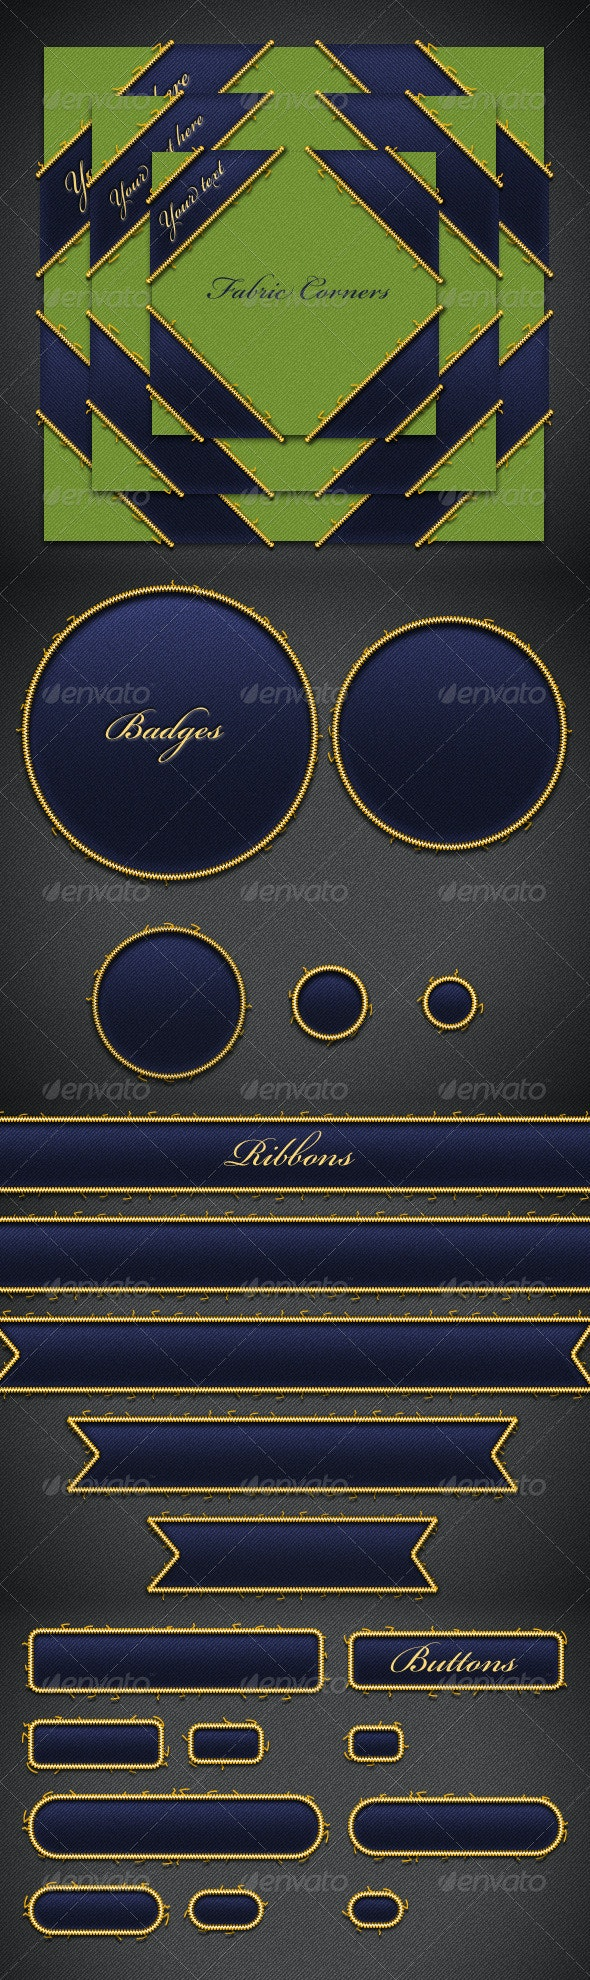 Fabric Badges, Corners, Buttons and Ribbons - Badges & Stickers Web Elements